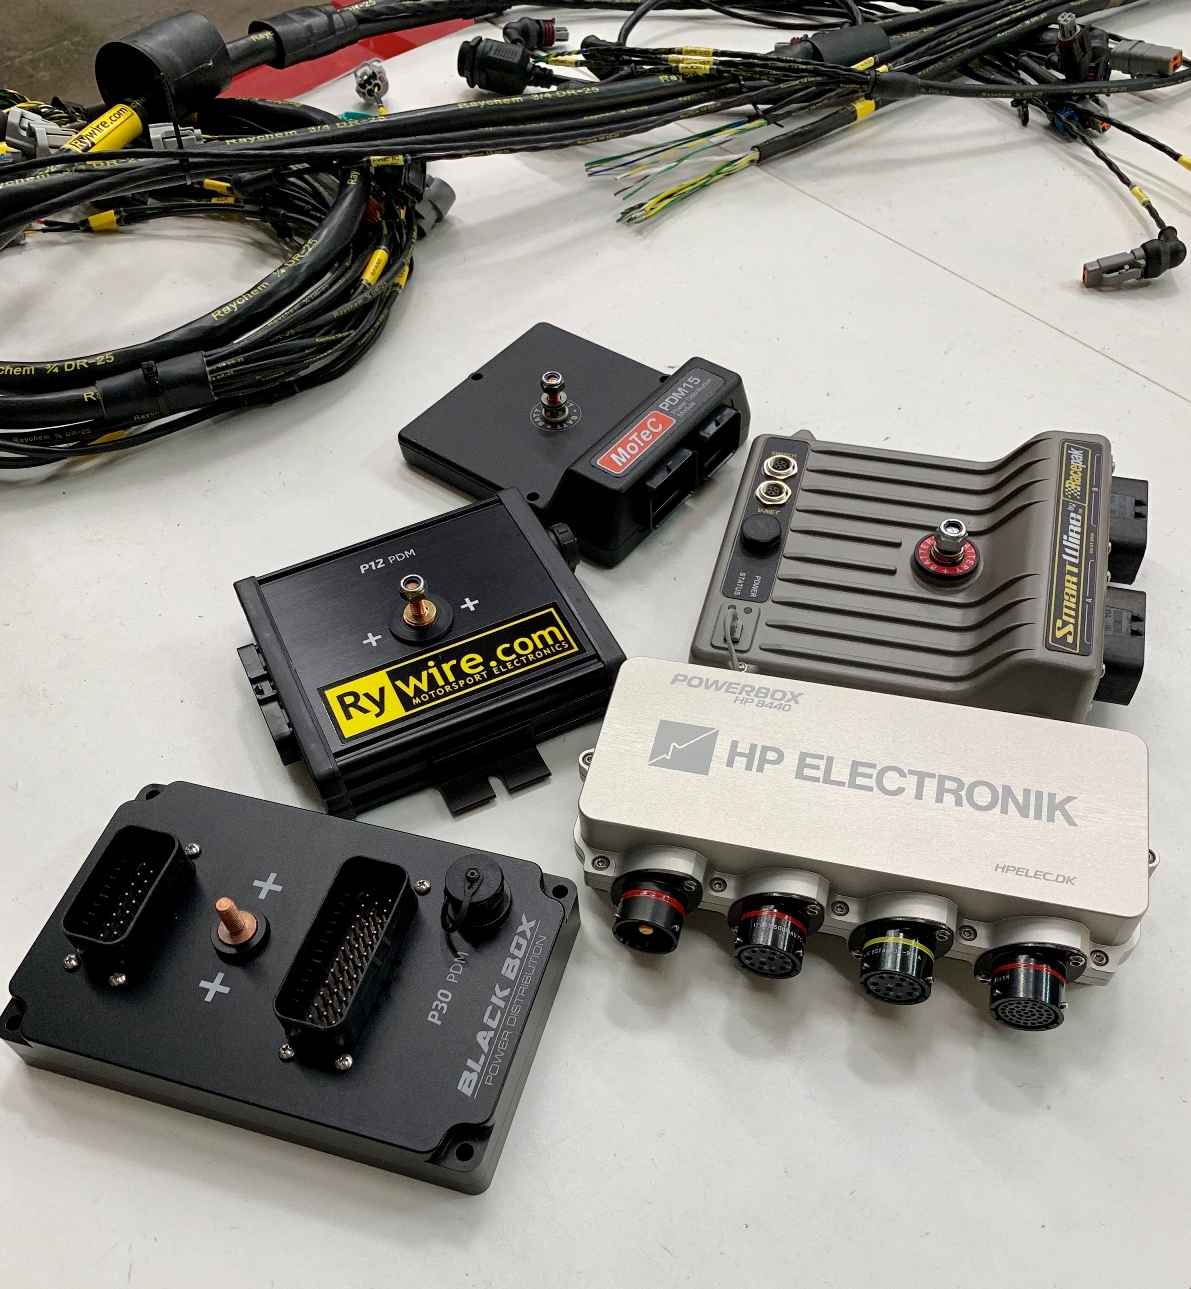 hight resolution of we now offer full chassis solutions as well as engine wiring harnesses this total package will make life easier with a plug and play solution